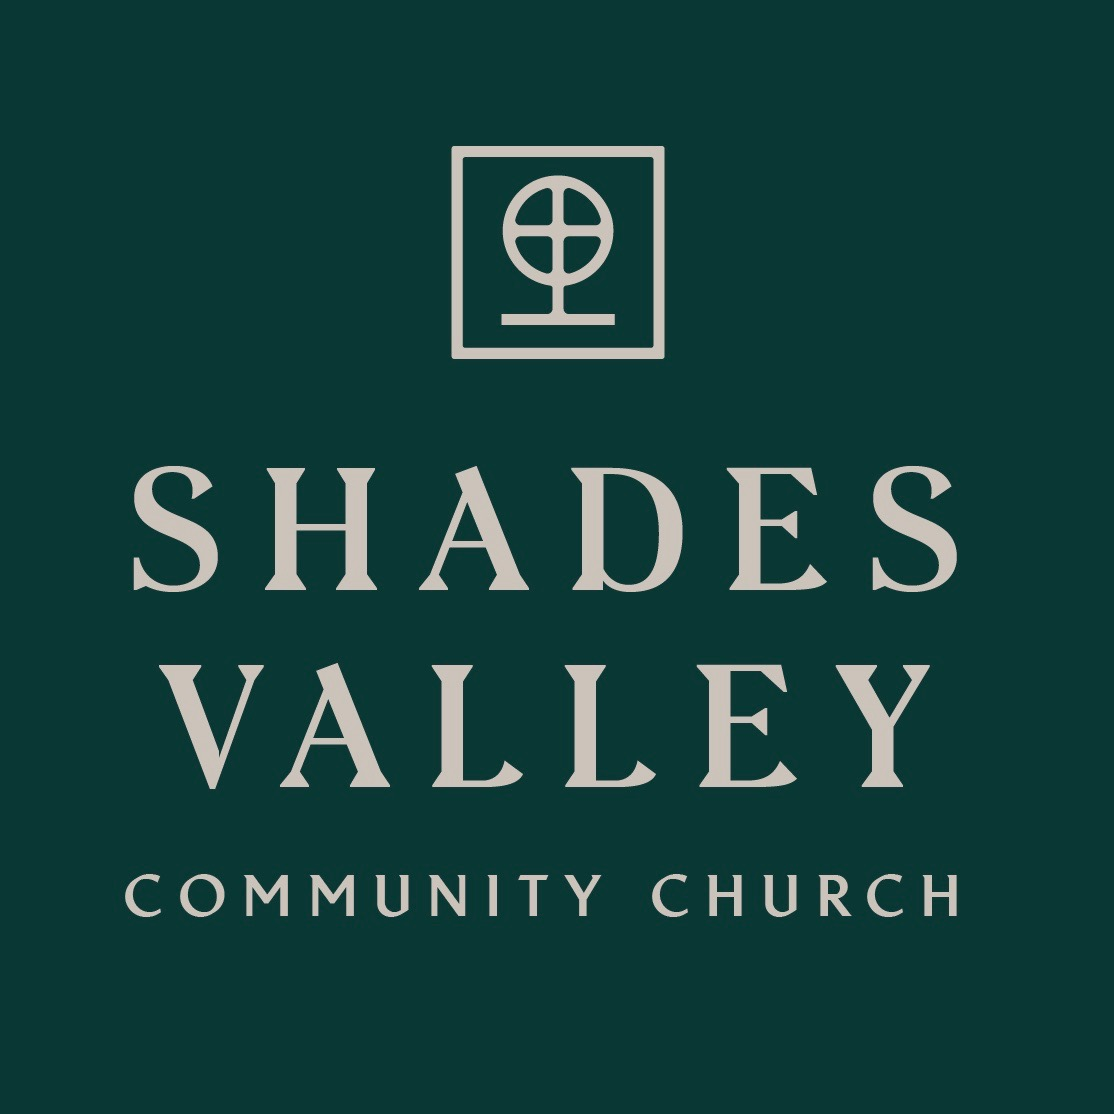 Shades Valley Community Church